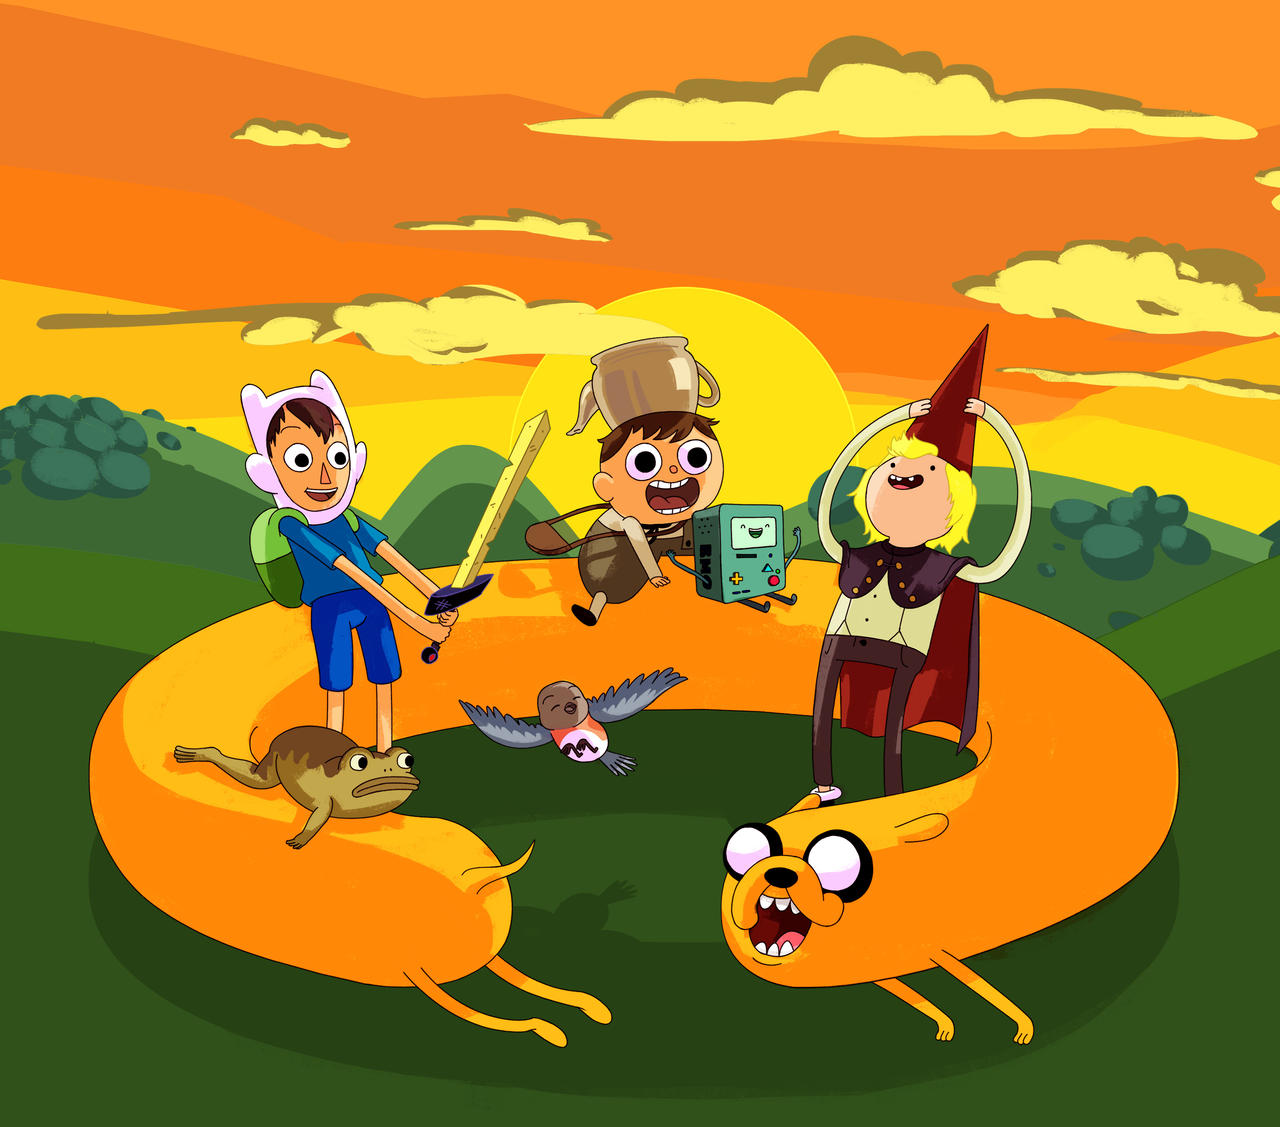 Adventure Time Over The Garden Wall Mashup By Yasada On Deviantart